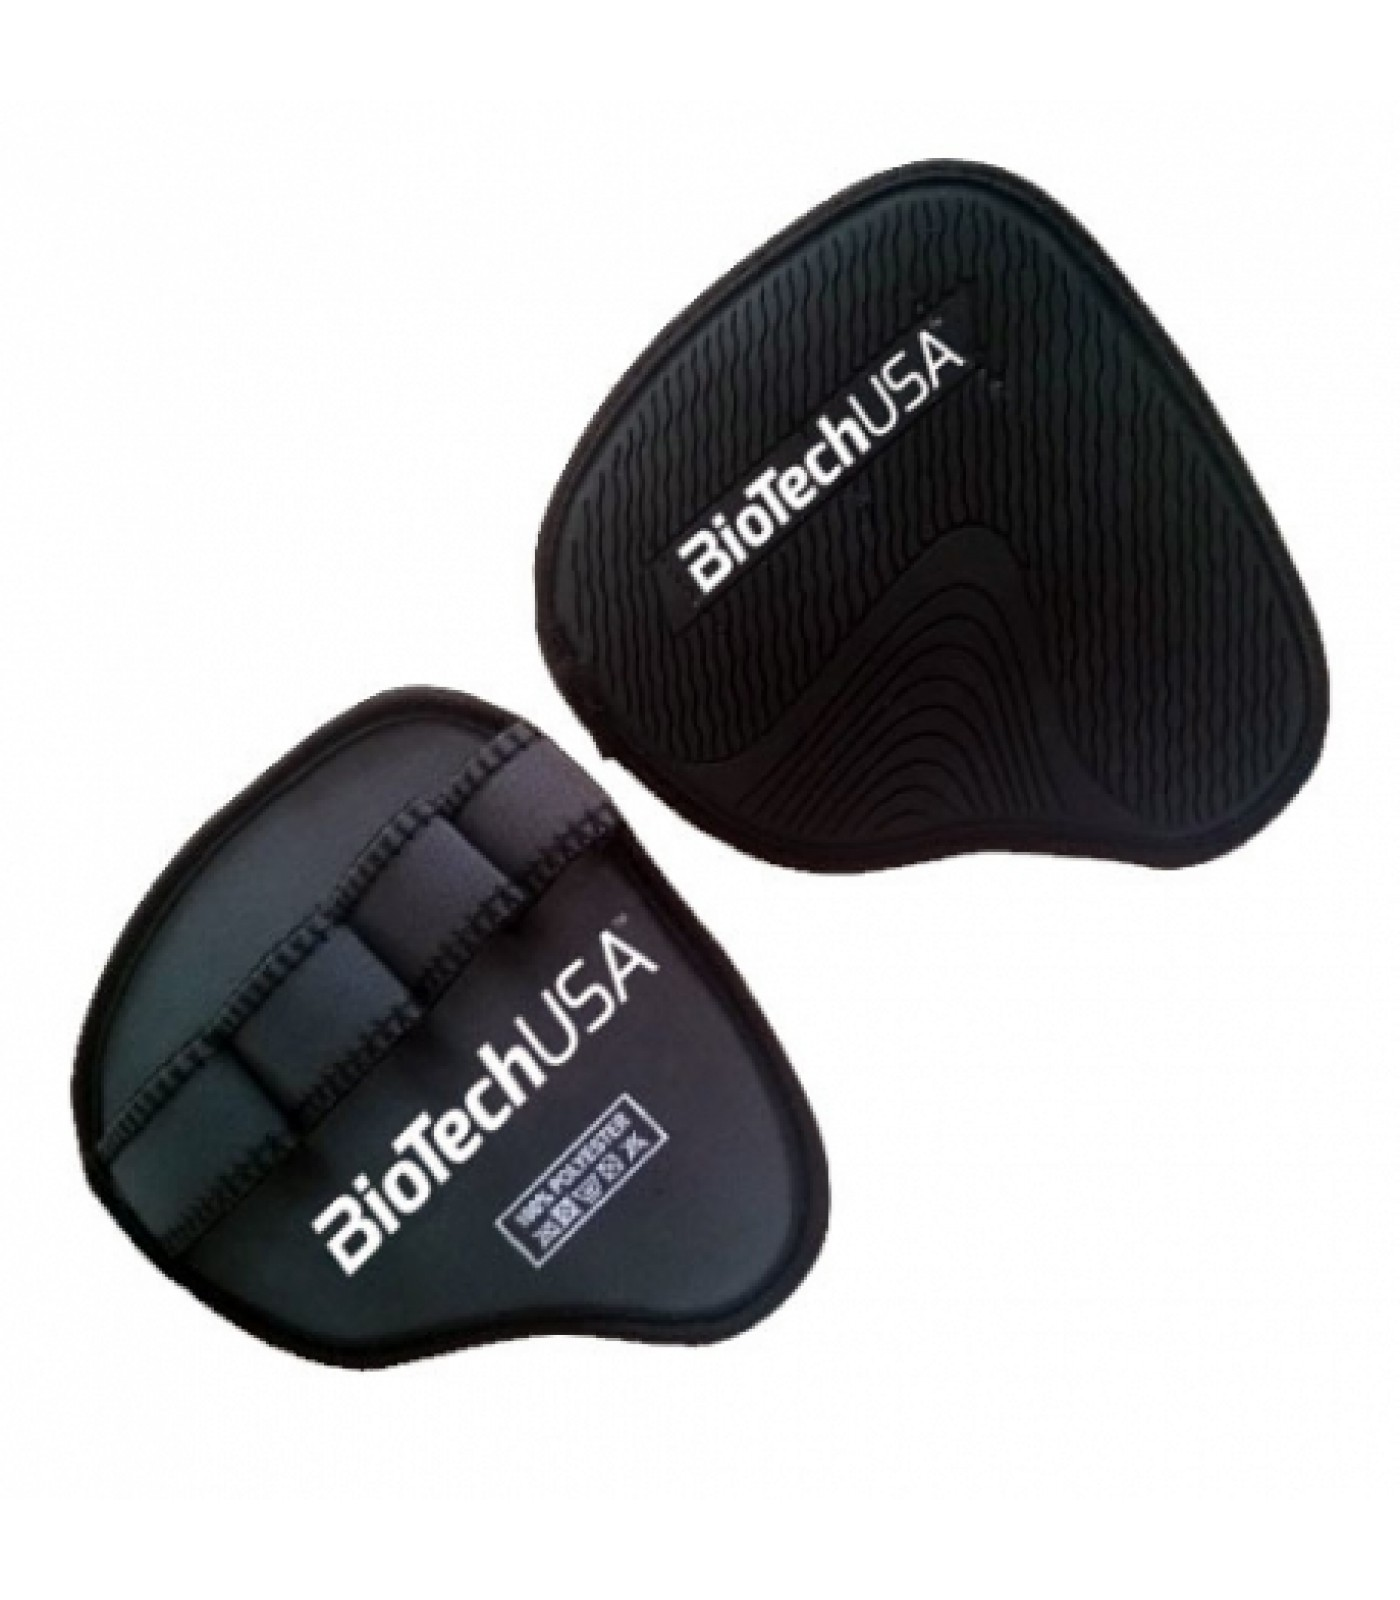 Подложки за захват - BIOTECH USA Grip Pad